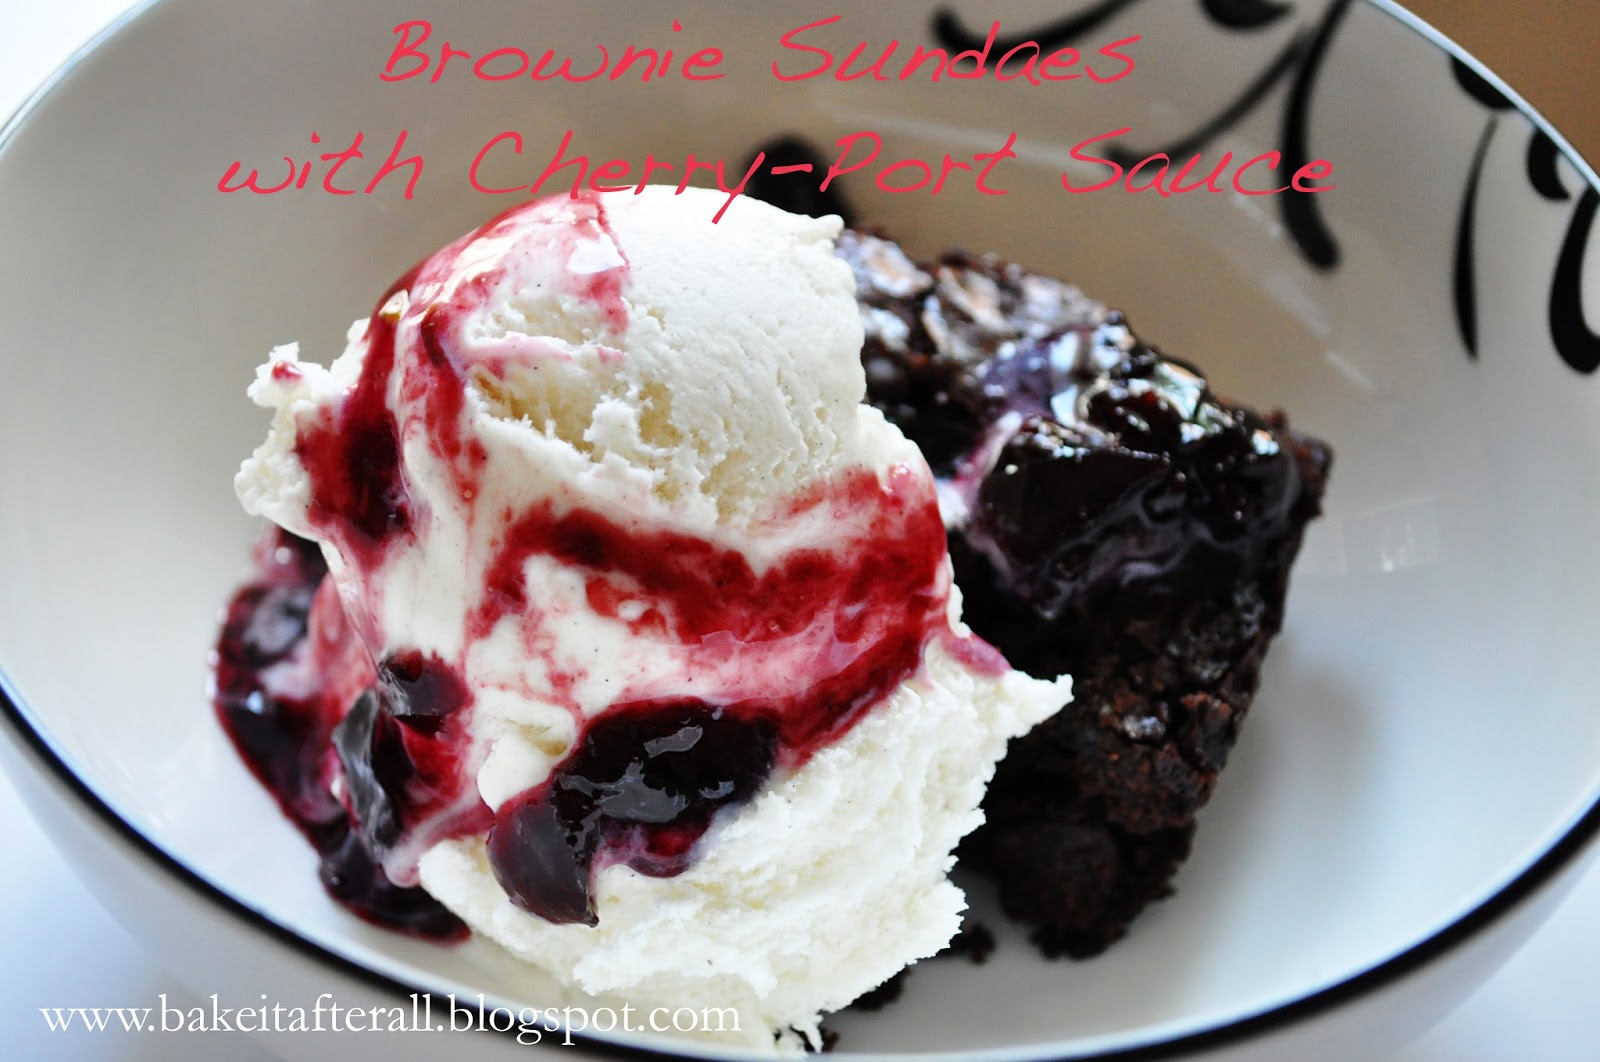 You're Gonna Bake It After All: Brownie Sundaes with Cherry-Port Sauce